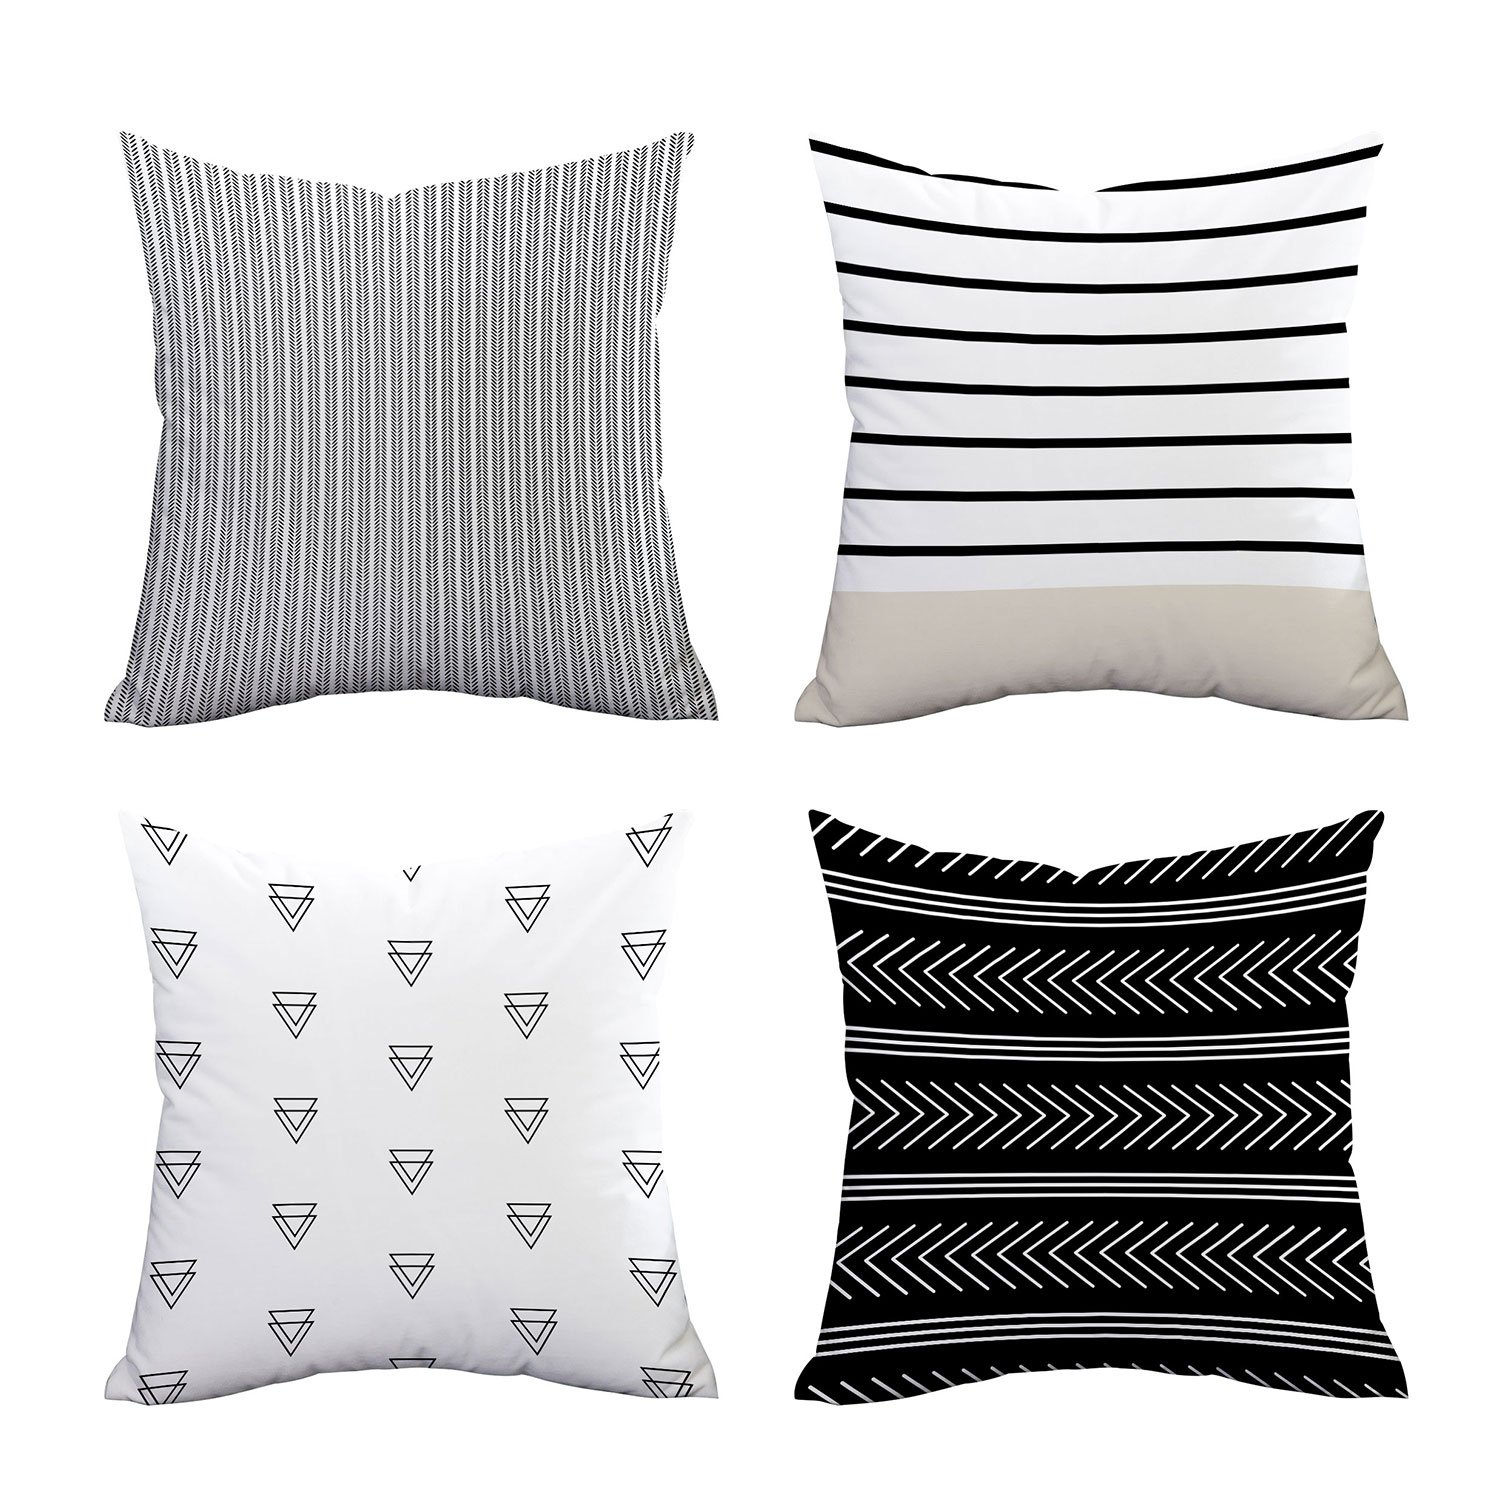 Set of 4 Pillow Covers Stripe Pattern Throw Pillow Case Daily Decorations Sofa Throw Pillow Case Cushion Covers Zippered Pillowcase 18'' x 18''